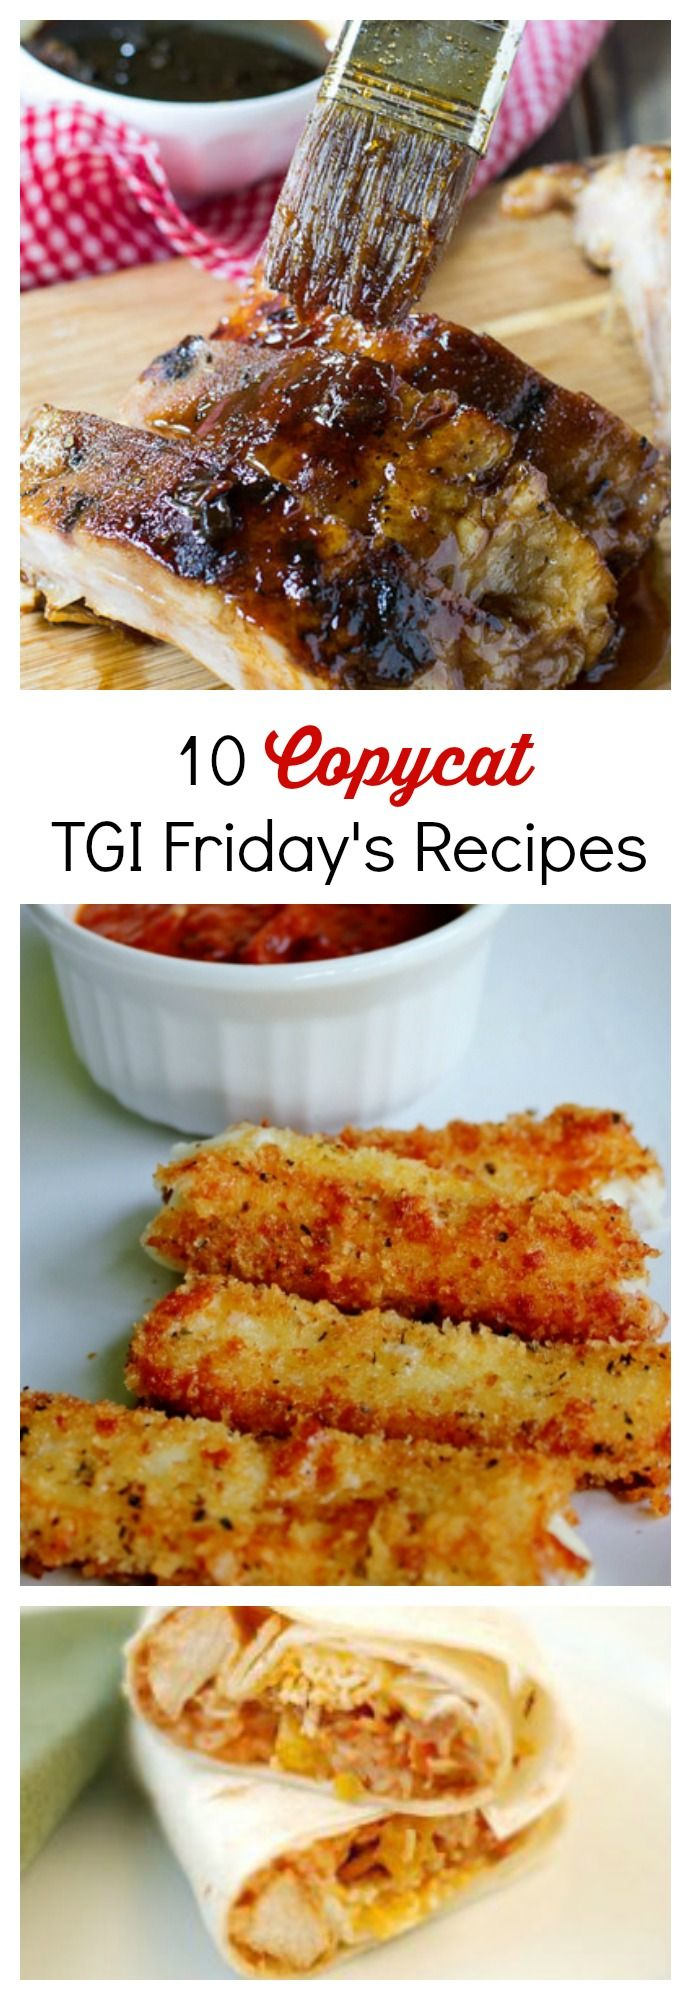 Eat like it's Friday every day with these 10 Copycat TGI Friday's recipes! From dinners to appetizers to desserts, these are all the best Fridays menu items that you can make at home!